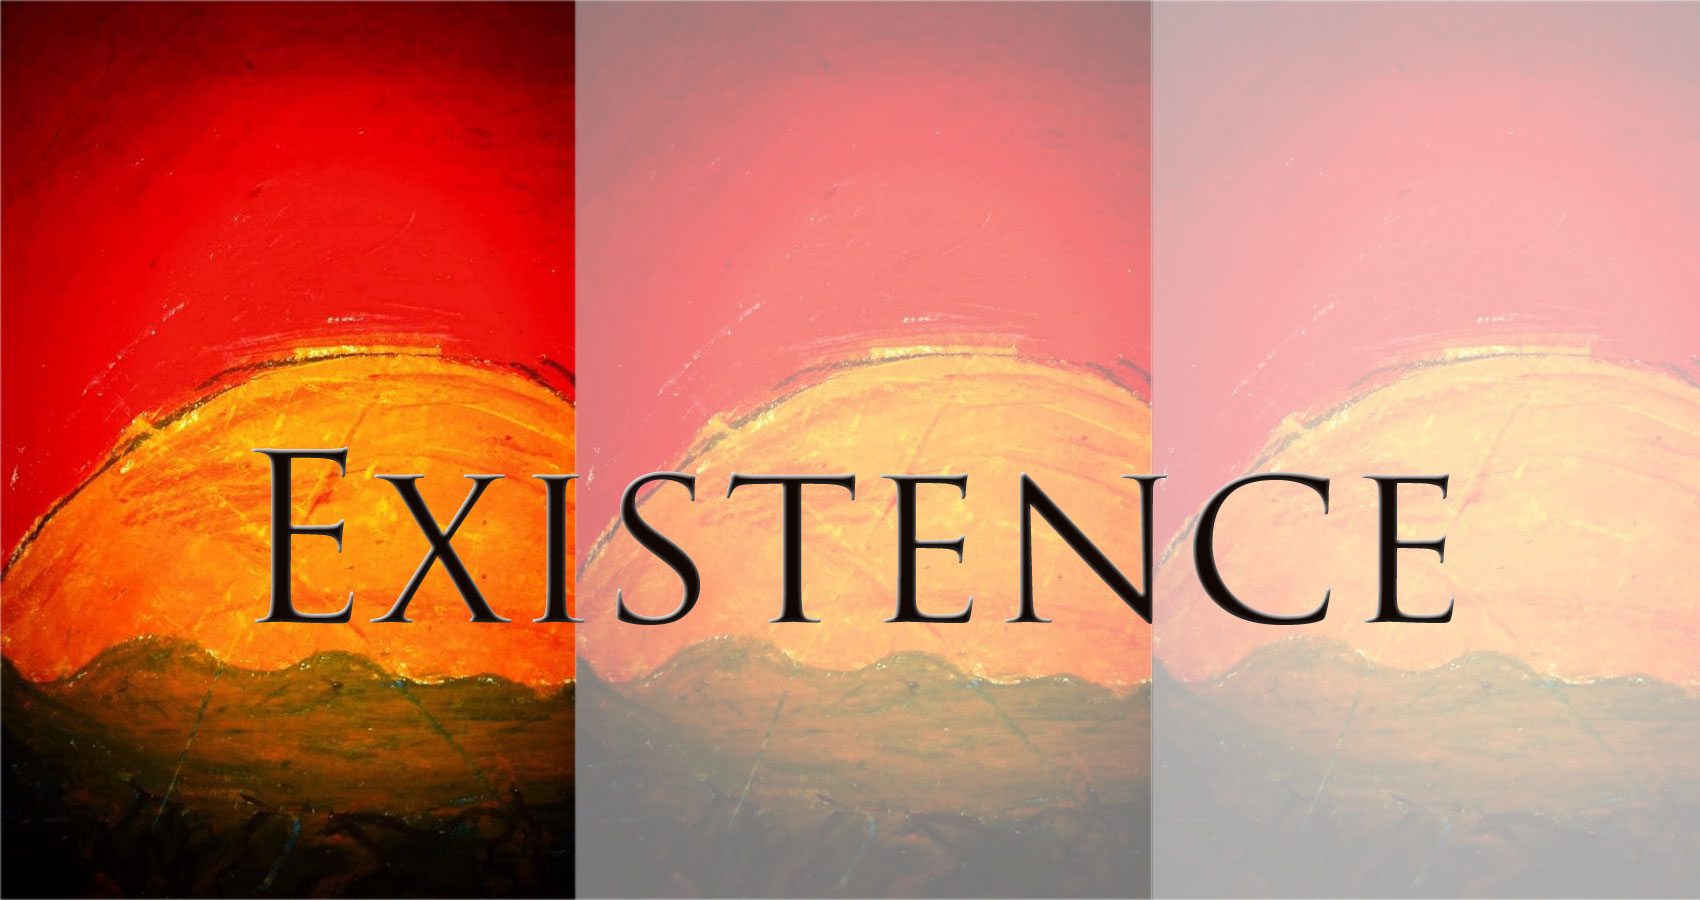 Existence by Aparma Reddy at Spillwords.com